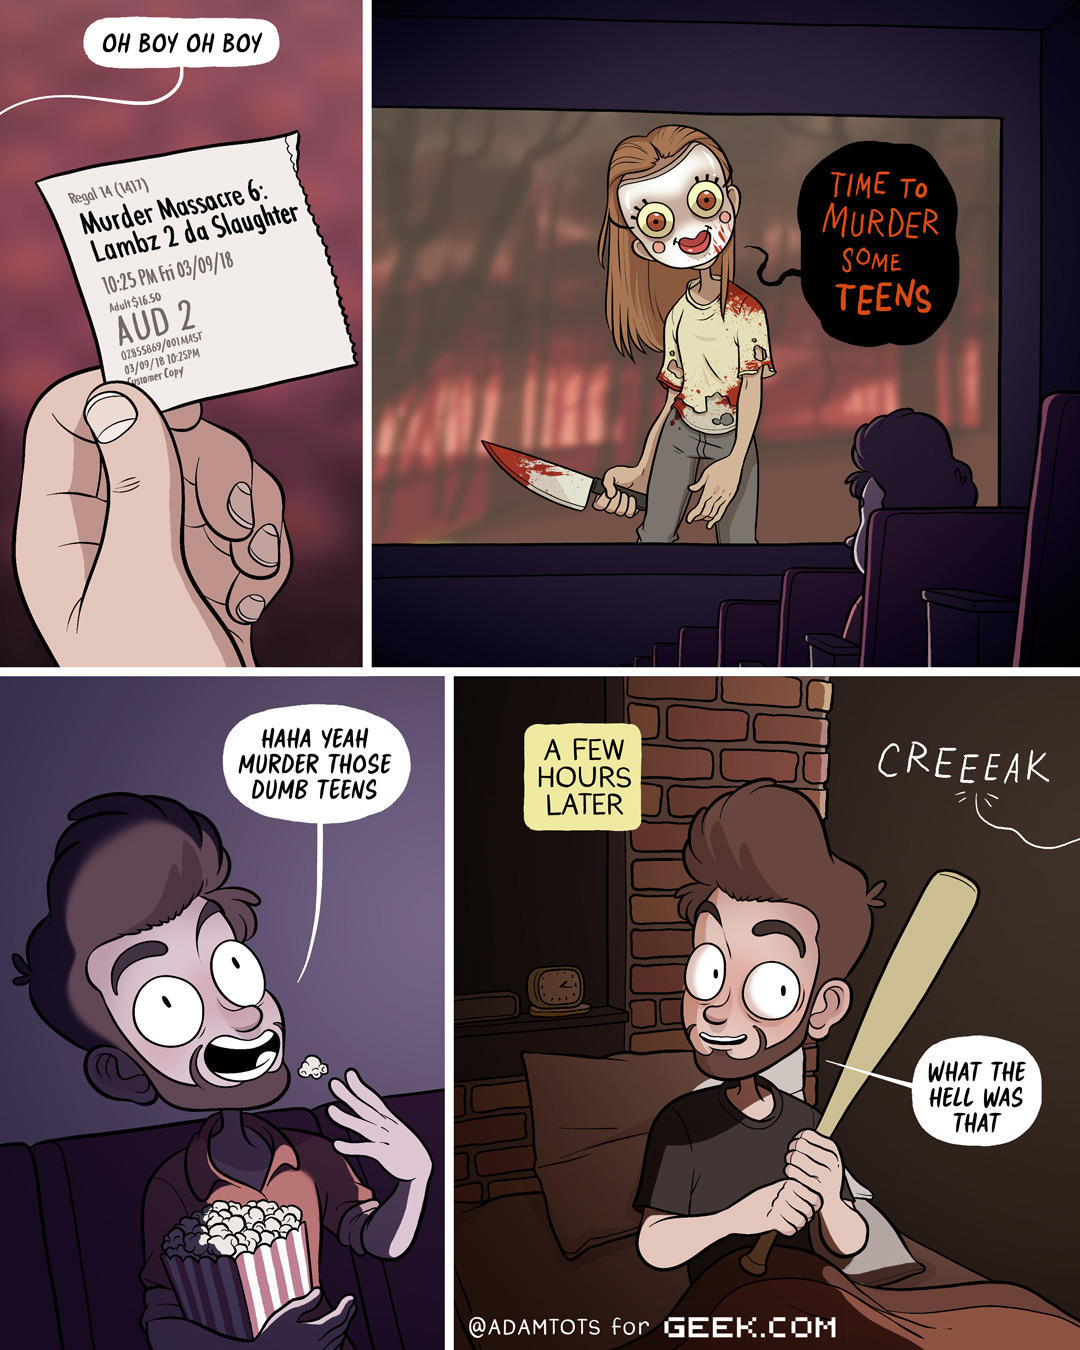 Horror Movies Don't Scare Me